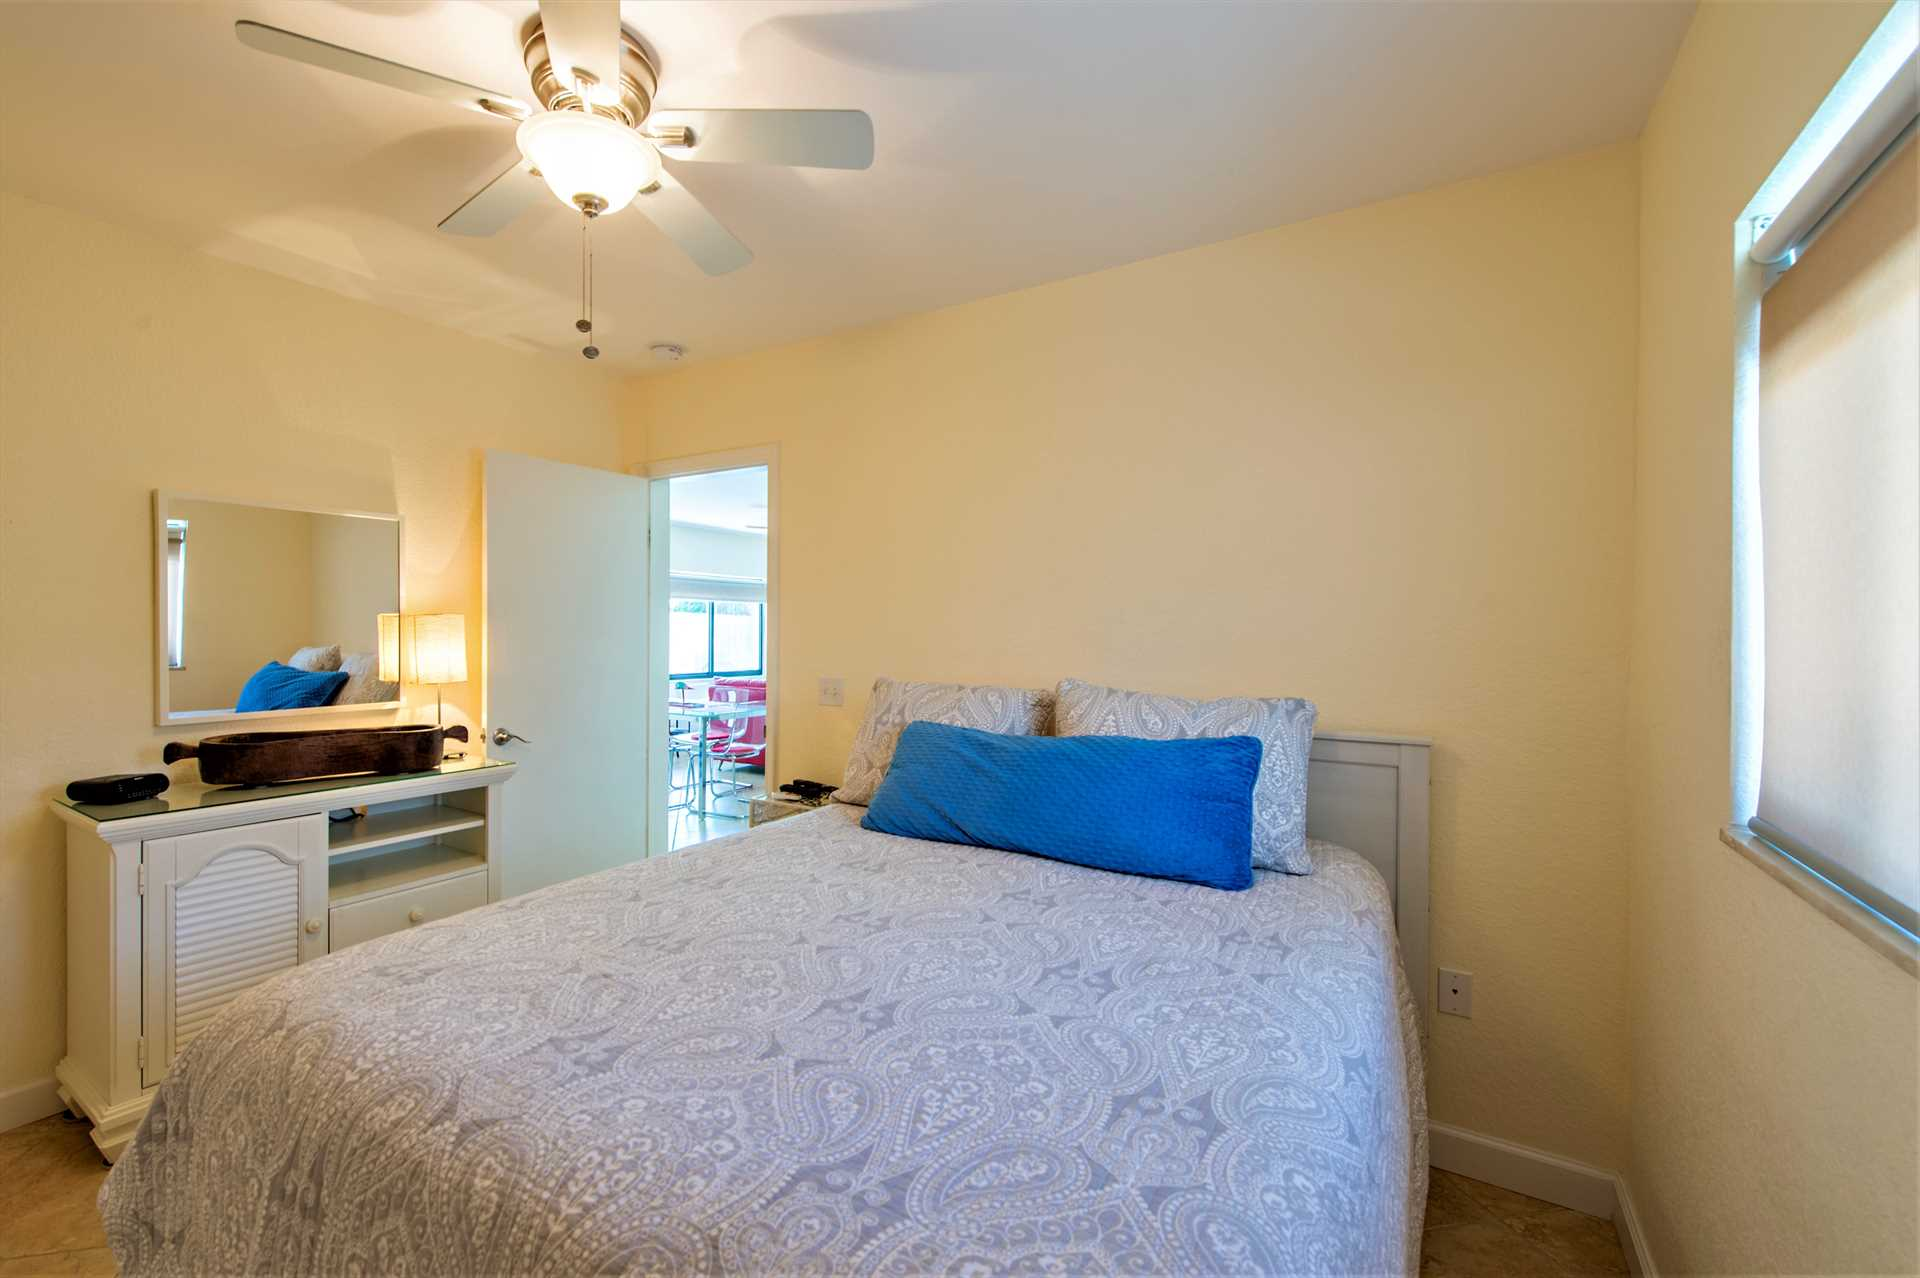 Second bedroom has large closet and both bedrooms have ceili